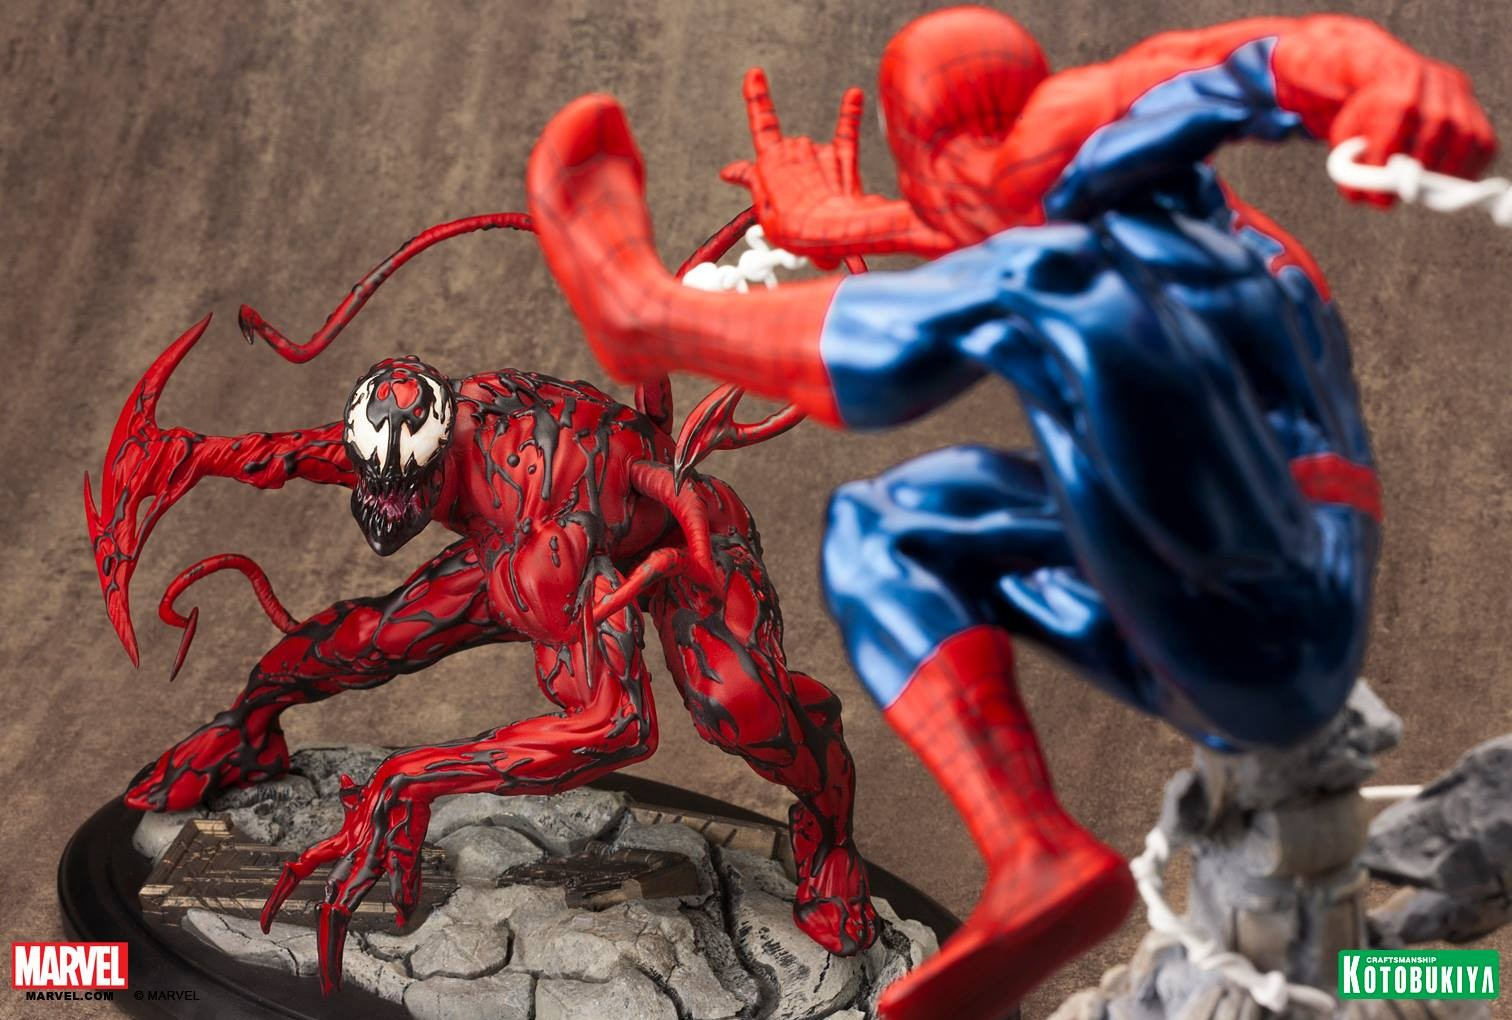 black spiderman vs carnage - photo #7